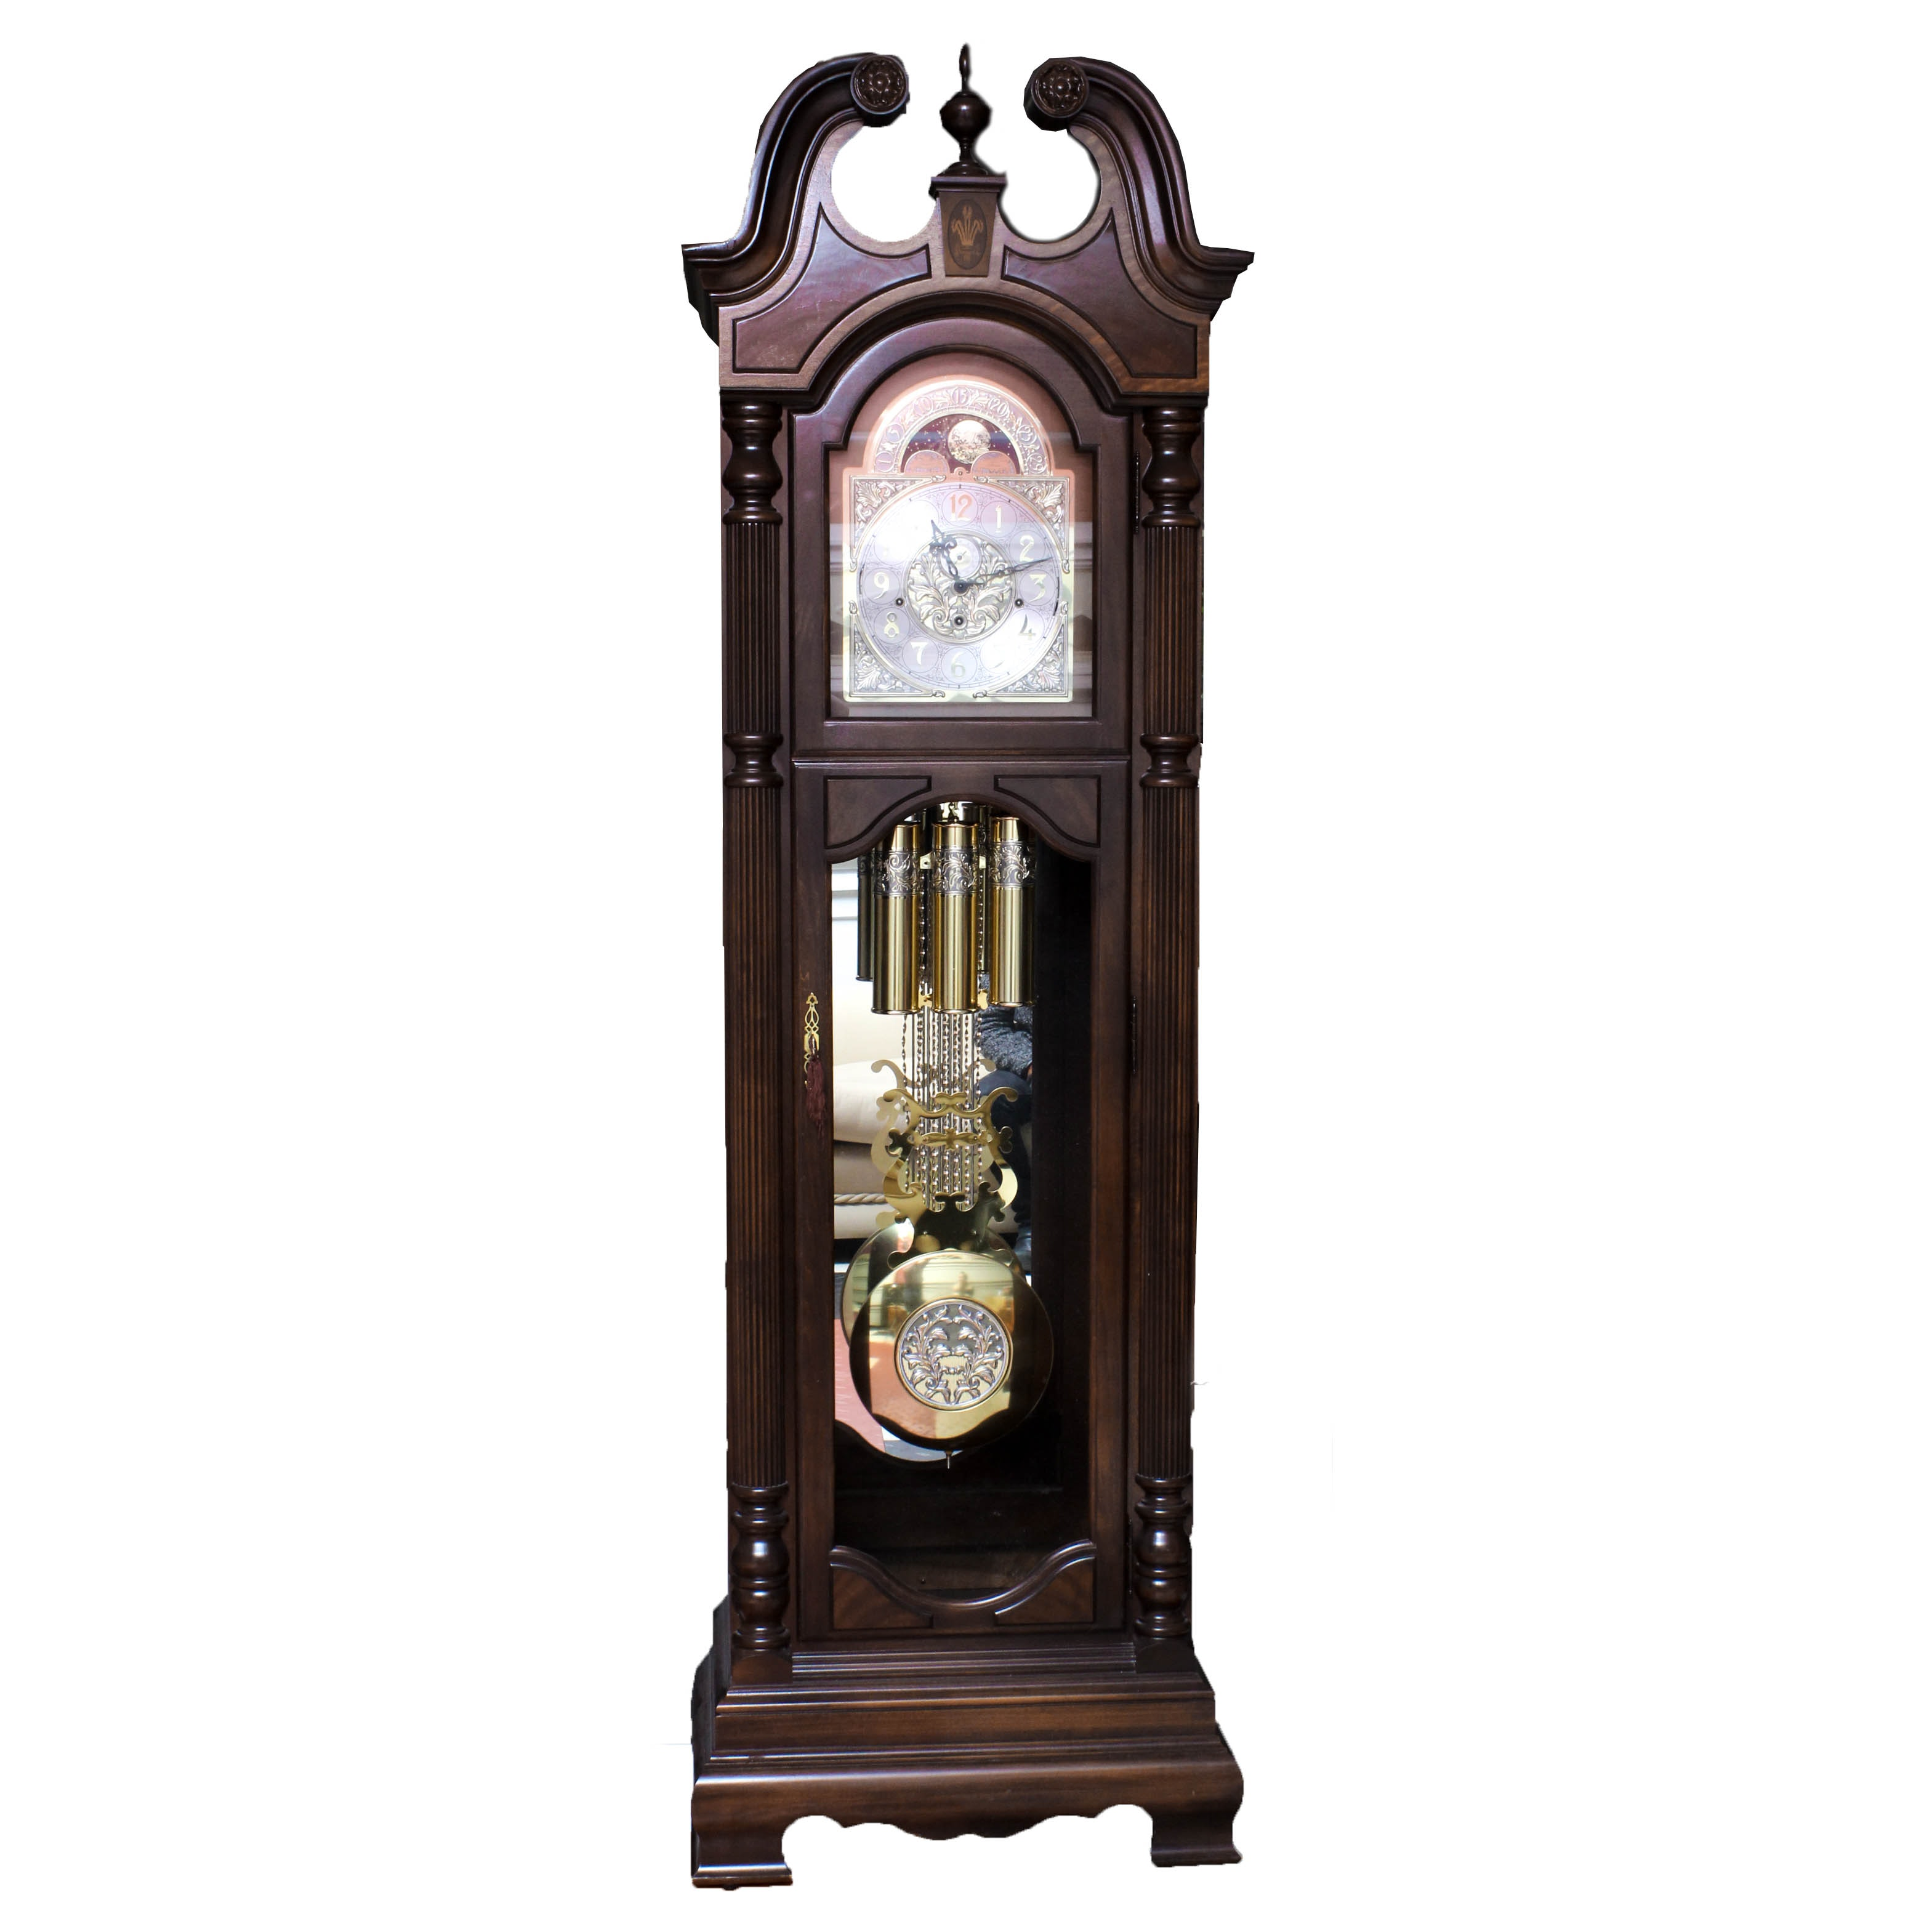 Limited Edition Grandfather Clock in Cherry with Mahogany Inlay by Howard Miller